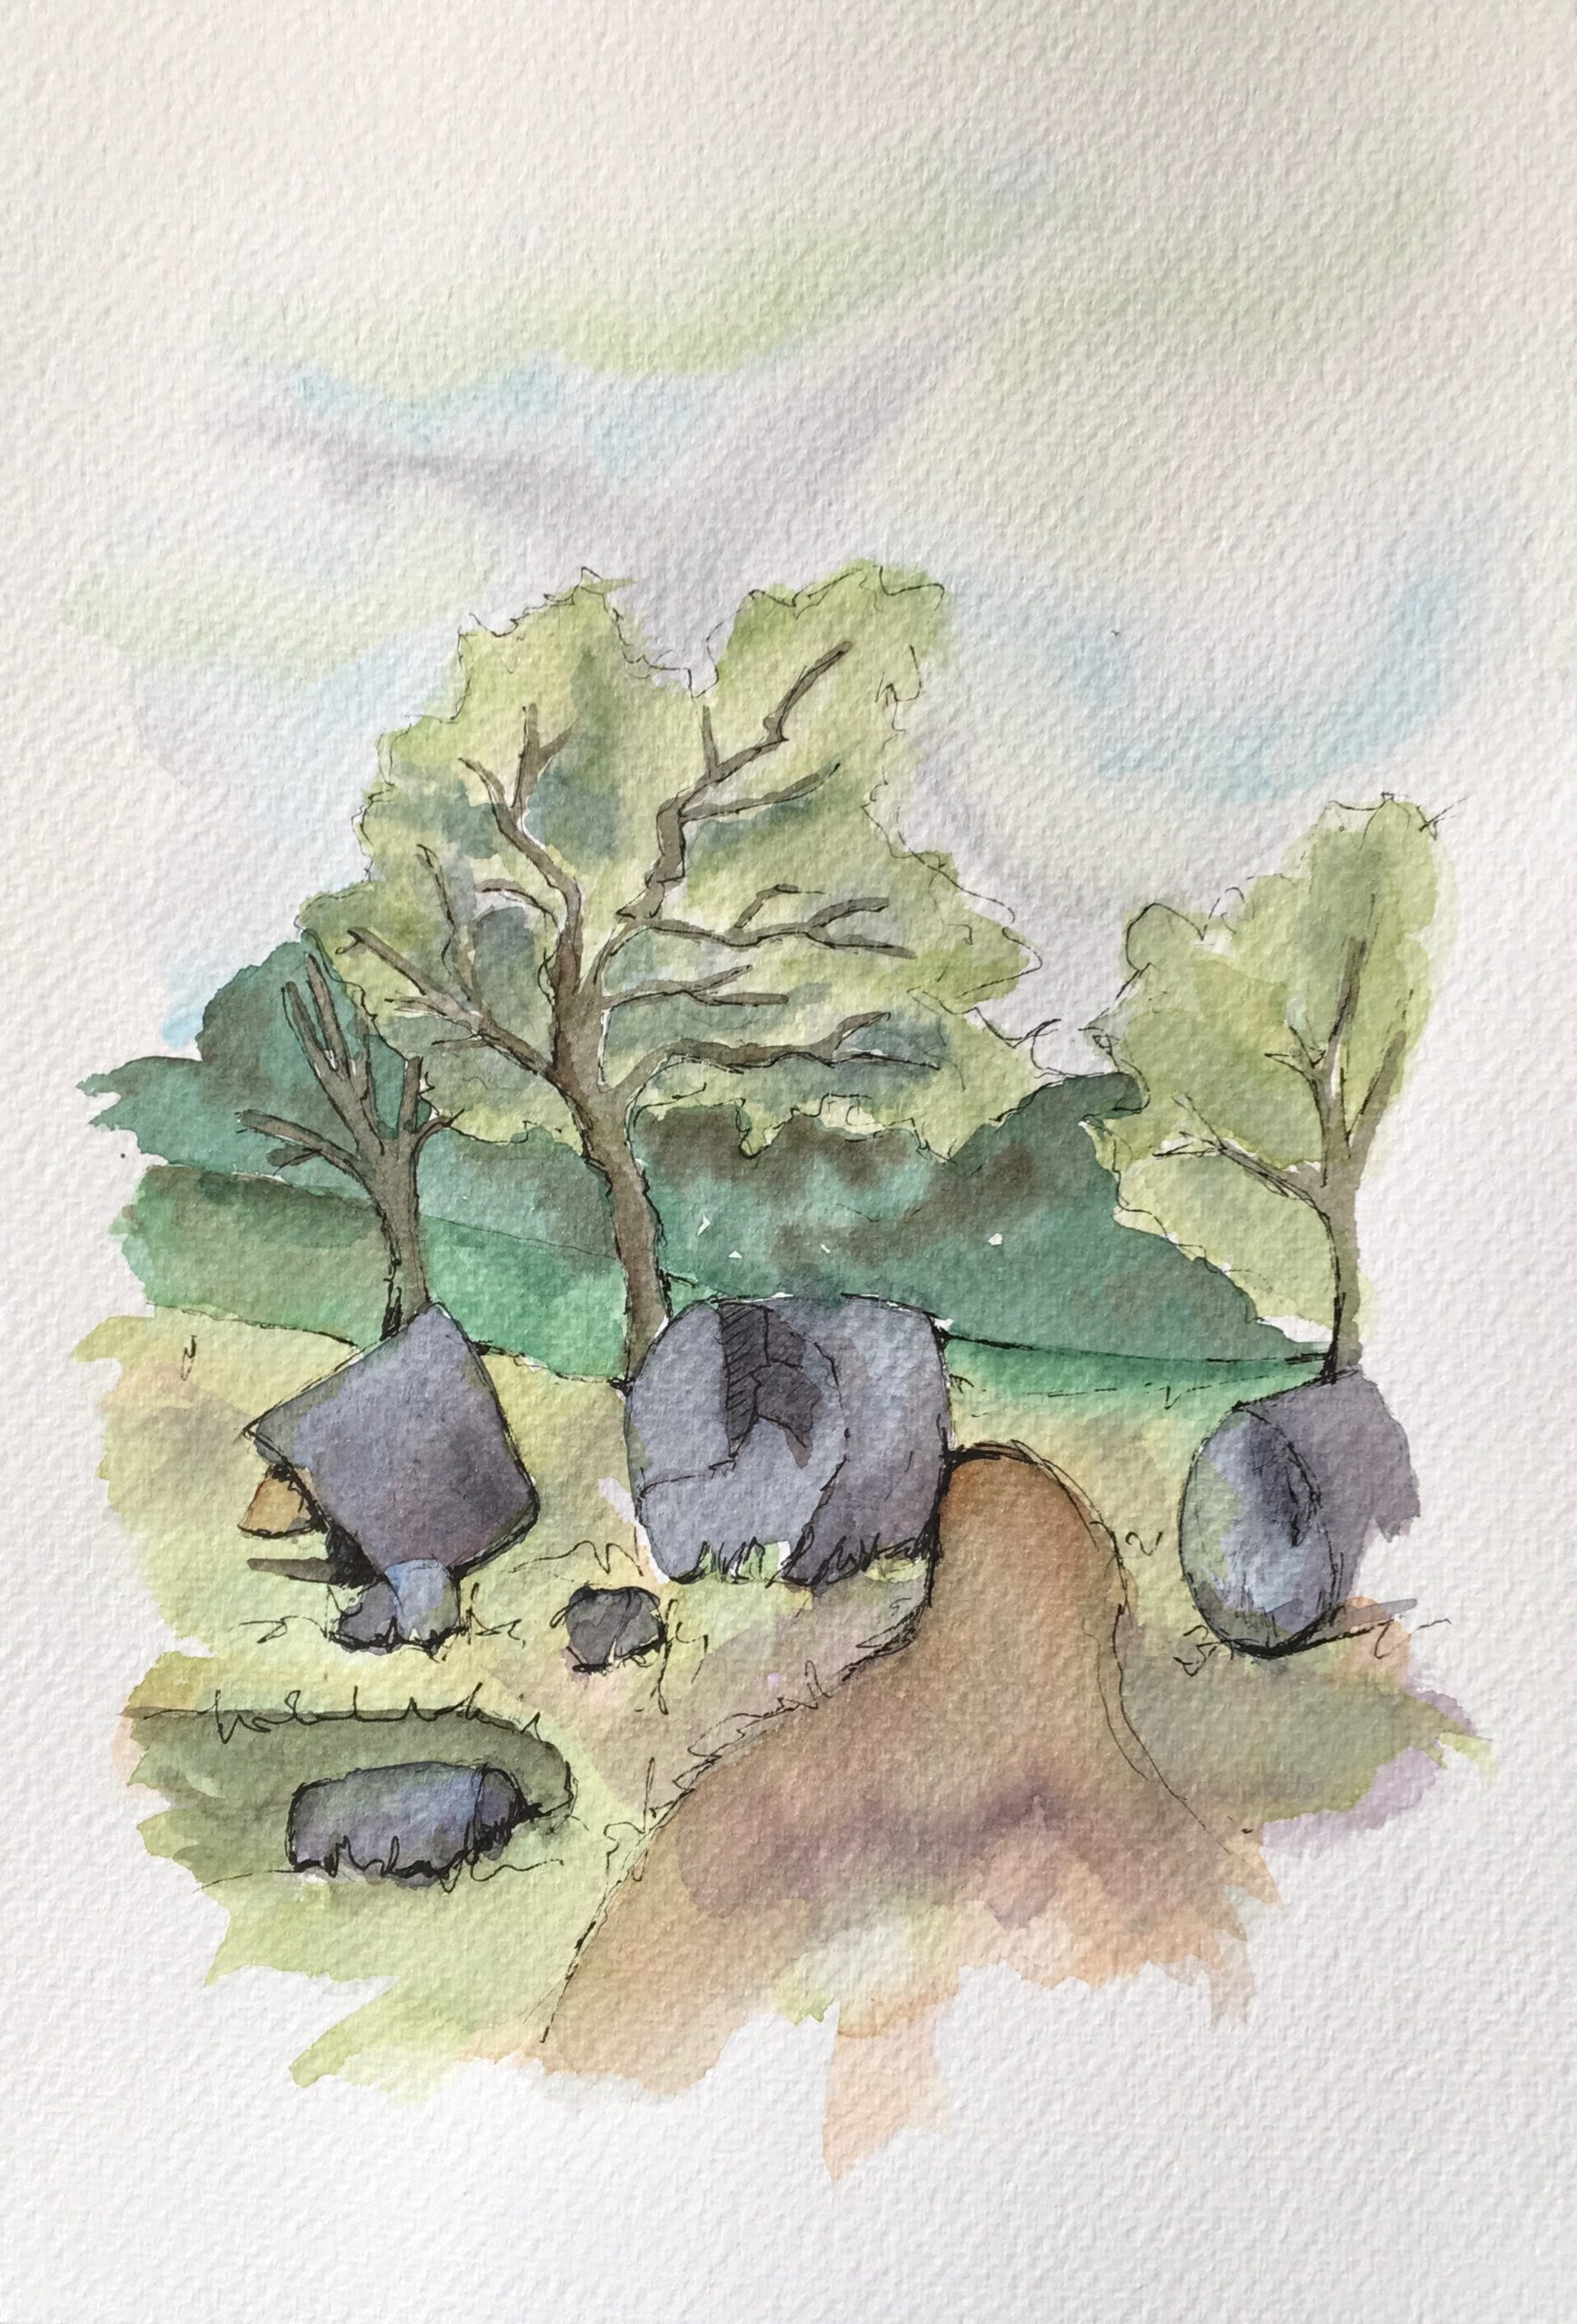 Painting of the Cusa Caves near Selinunte